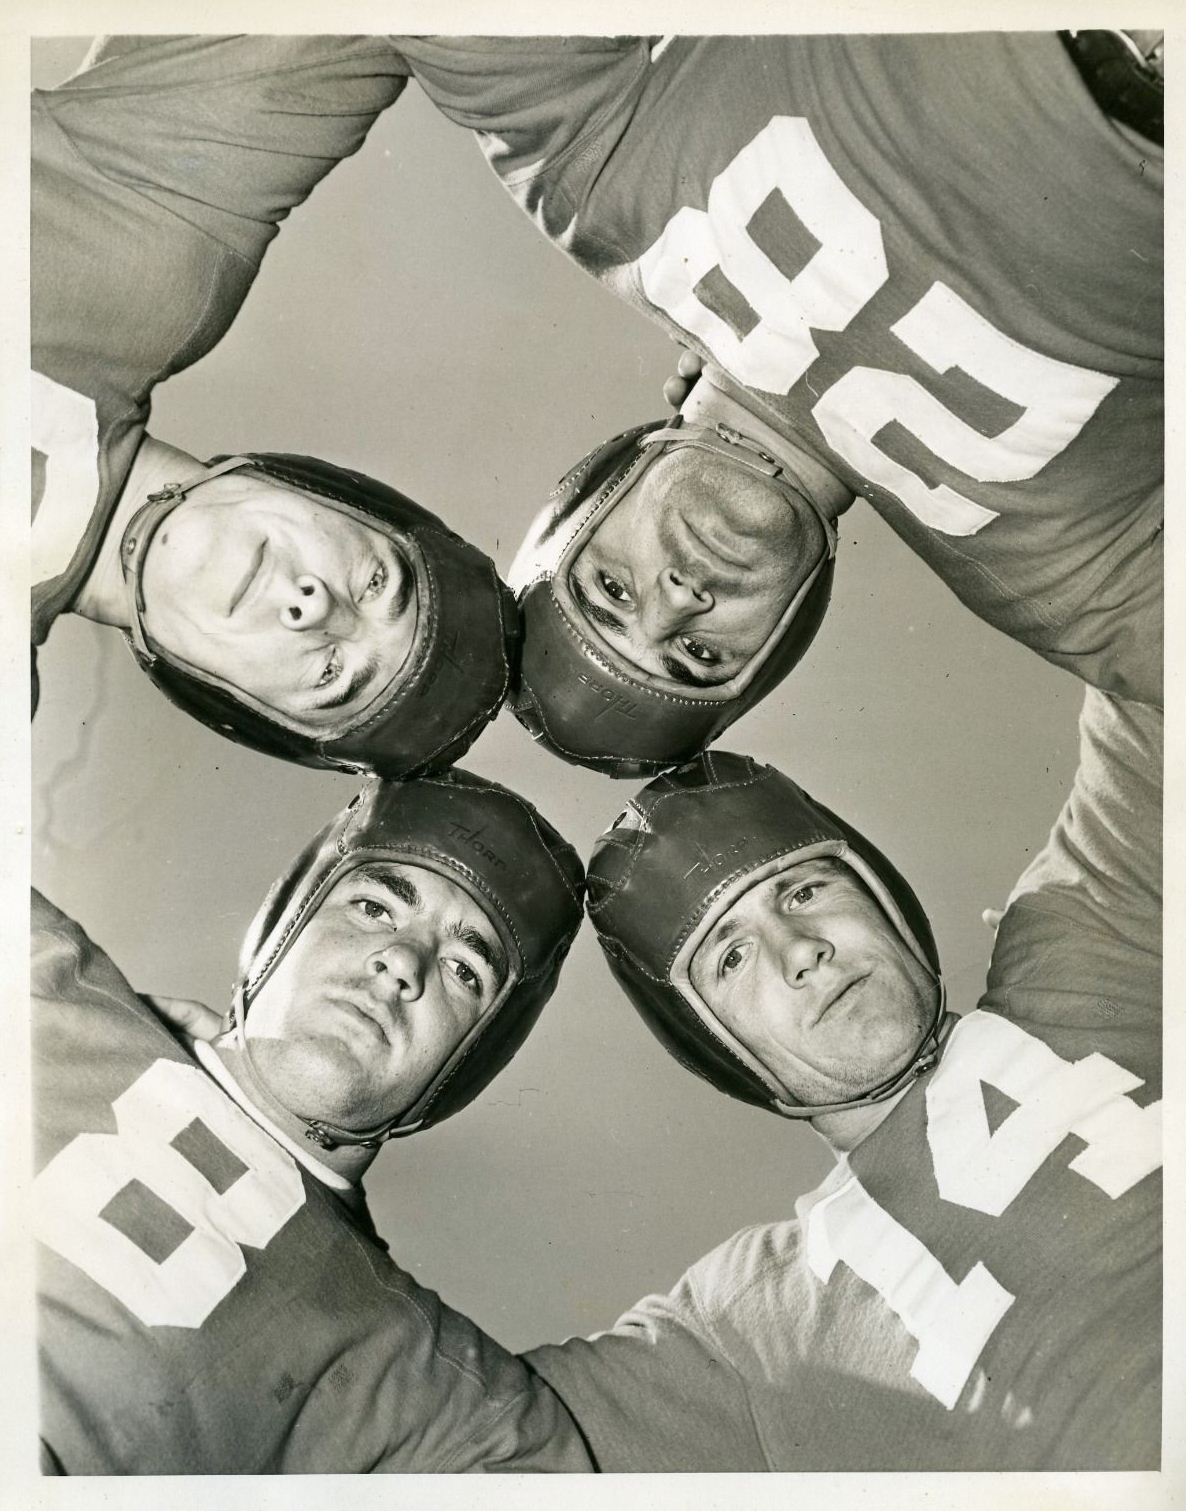 New York Giants (1940)